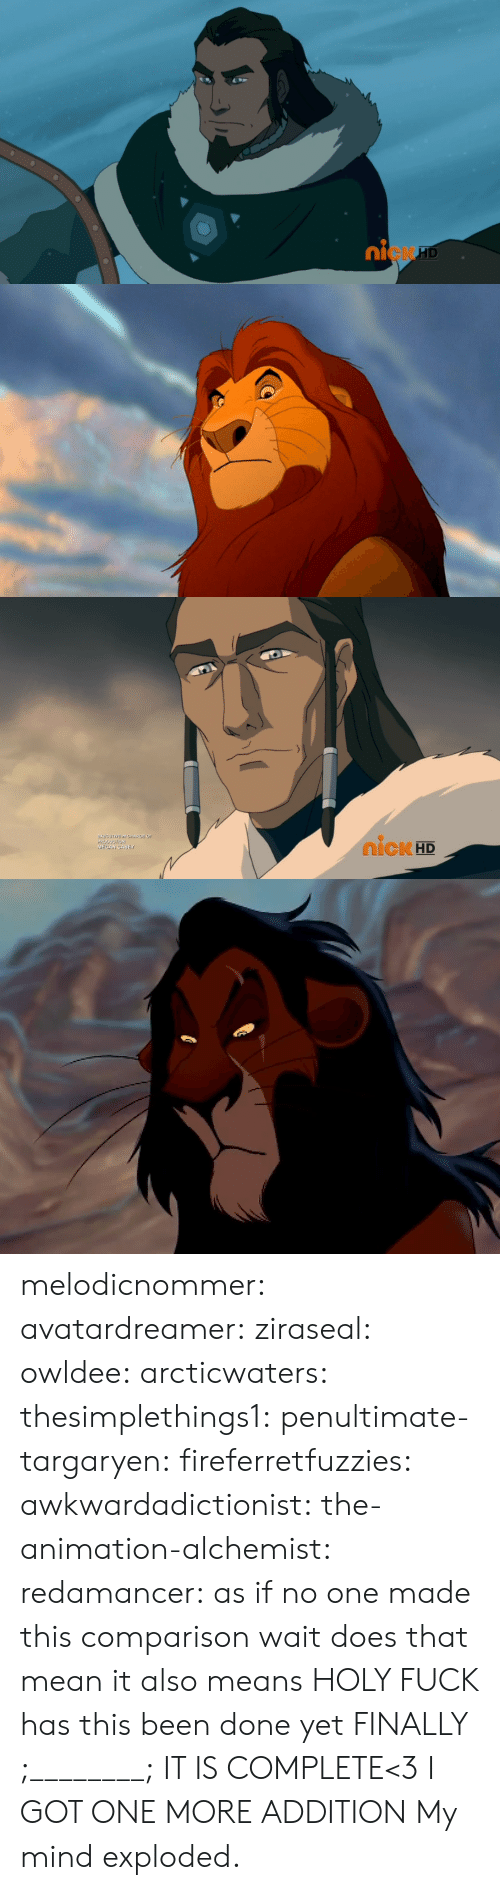 Disney, Gif, and Tumblr: 0  ni  cK   IcK HD  ME melodicnommer:  avatardreamer:  ziraseal:  owldee:  arcticwaters:  thesimplethings1:  penultimate-targaryen:  fireferretfuzzies:  awkwardadictionist:  the-animation-alchemist:  redamancer:  as if no one made this comparison        wait does that mean    it also means   HOLY FUCK  has this been done yet    FINALLY ;________; IT IS COMPLETE<3  I GOT ONE MORE ADDITION   My mind exploded.